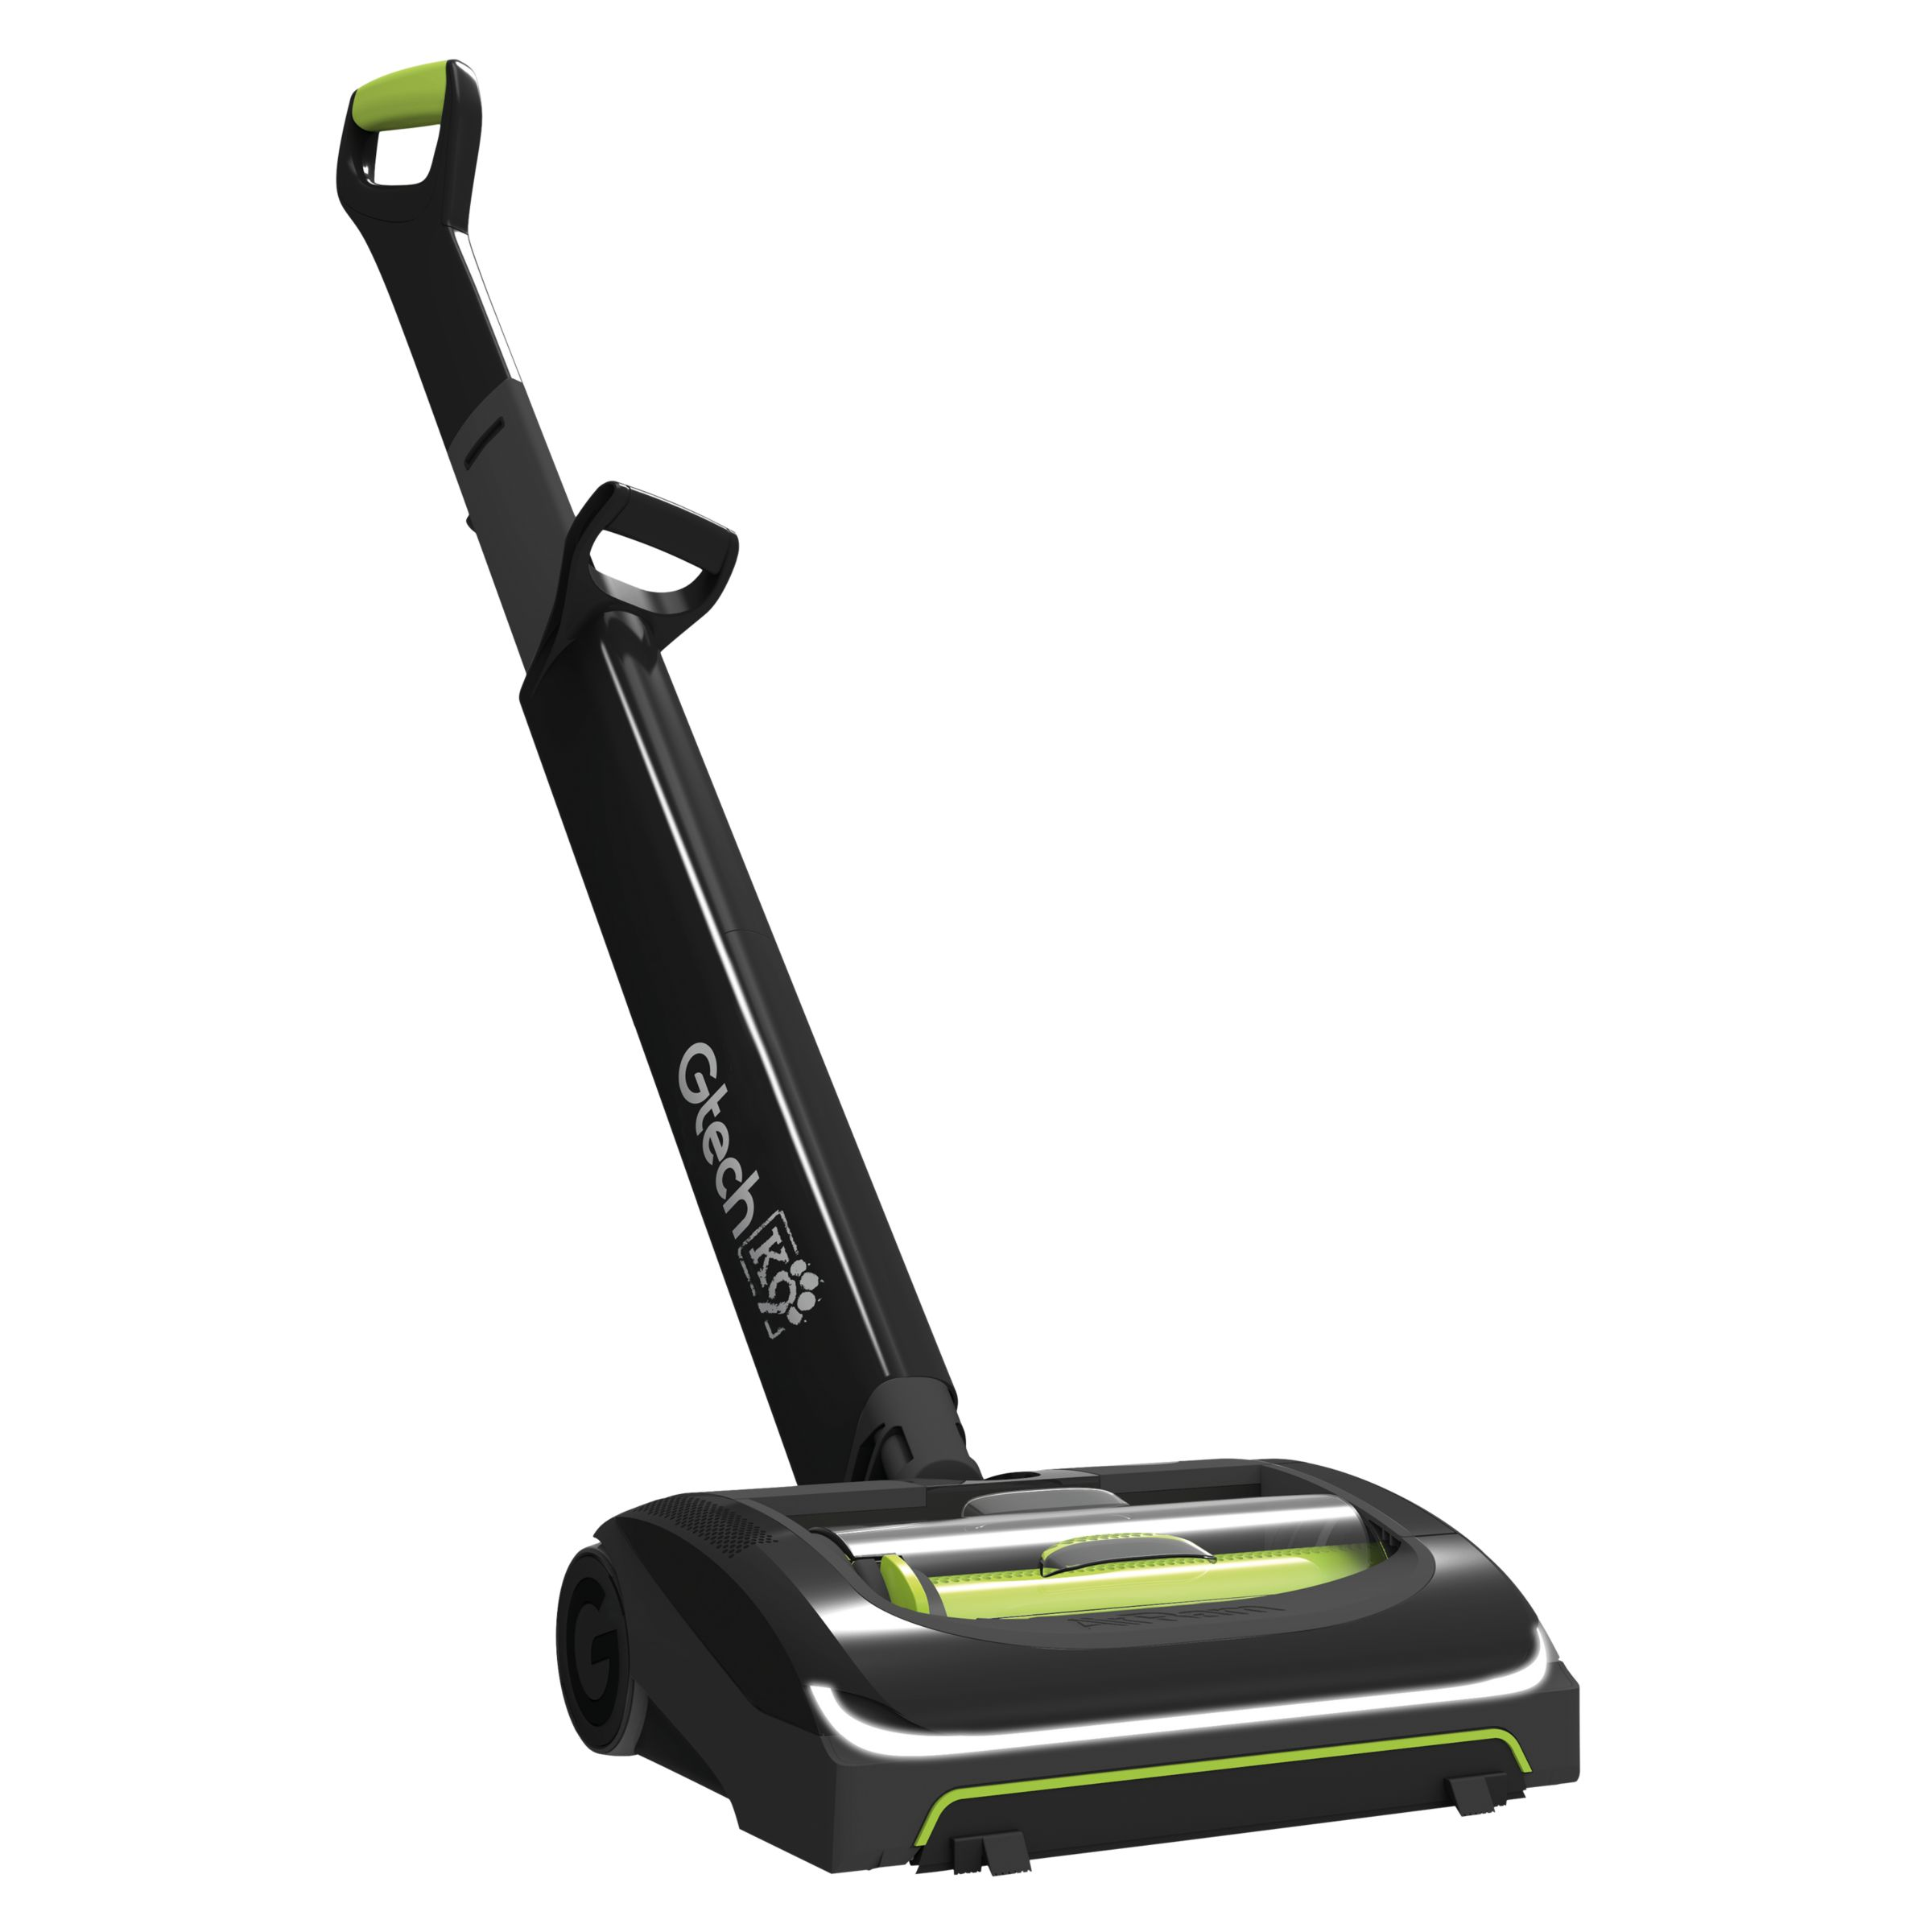 Gtech MK2 AirRam 22v 3.3kg Cordless Upright Vacuum Cleaner NEXT DAY FREE DELIVER